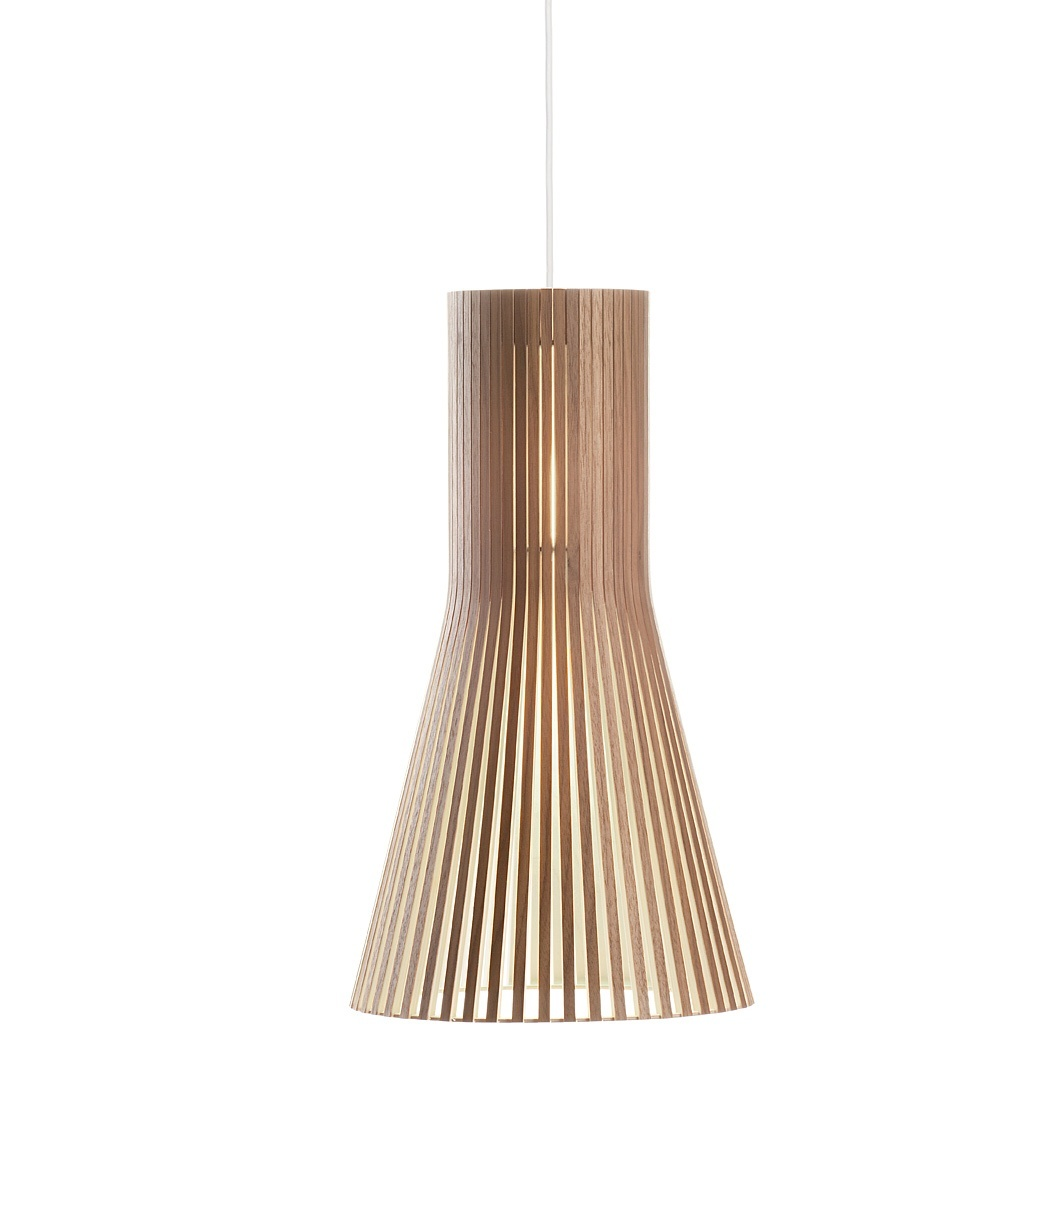 Secto Design Secto 4201 hanglamp-Walnoot